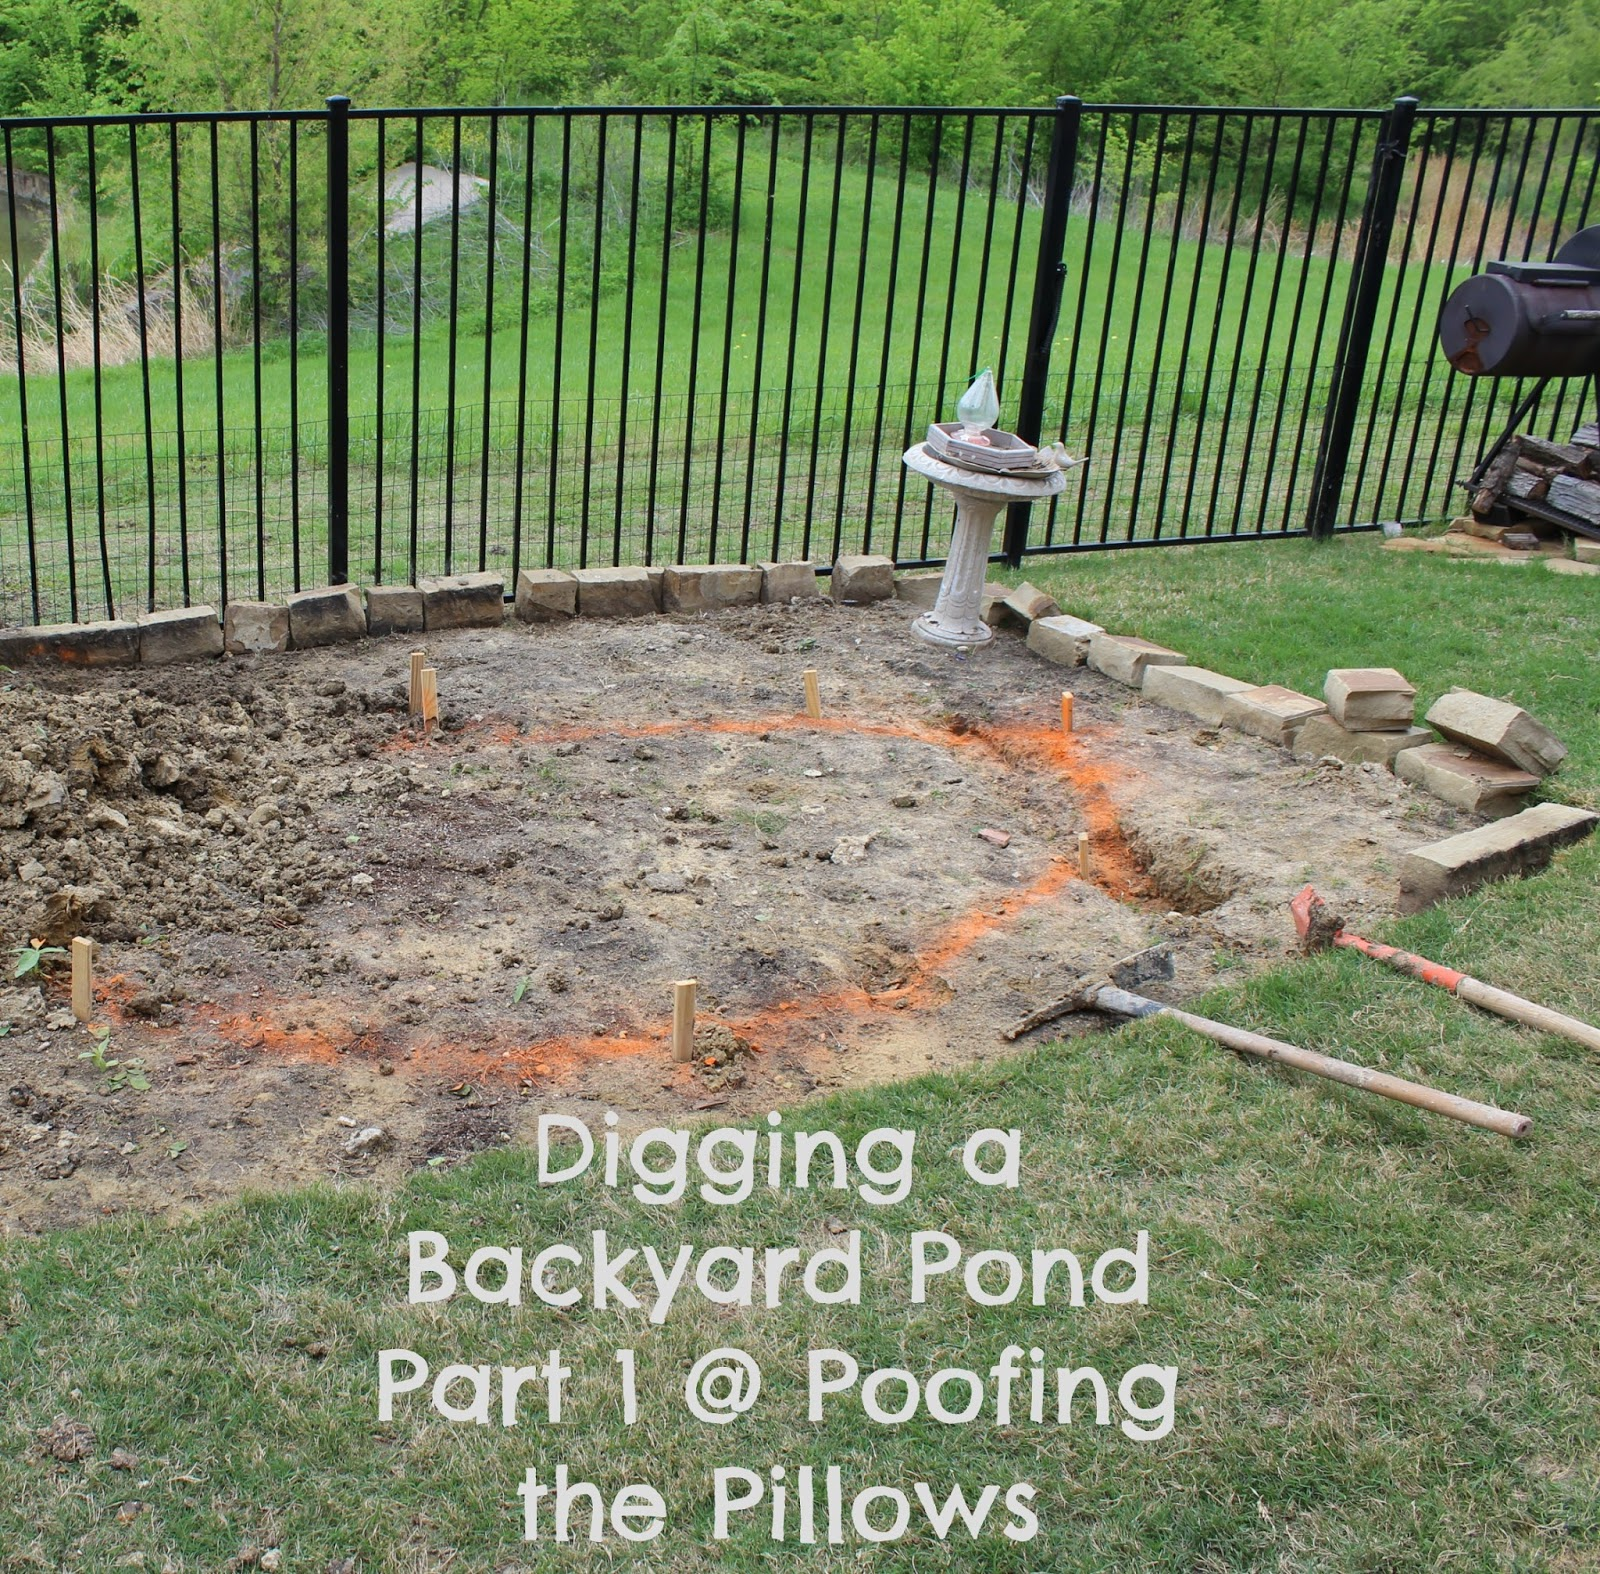 Building a Backyard Pond Part 2 | Poofing the Pillows